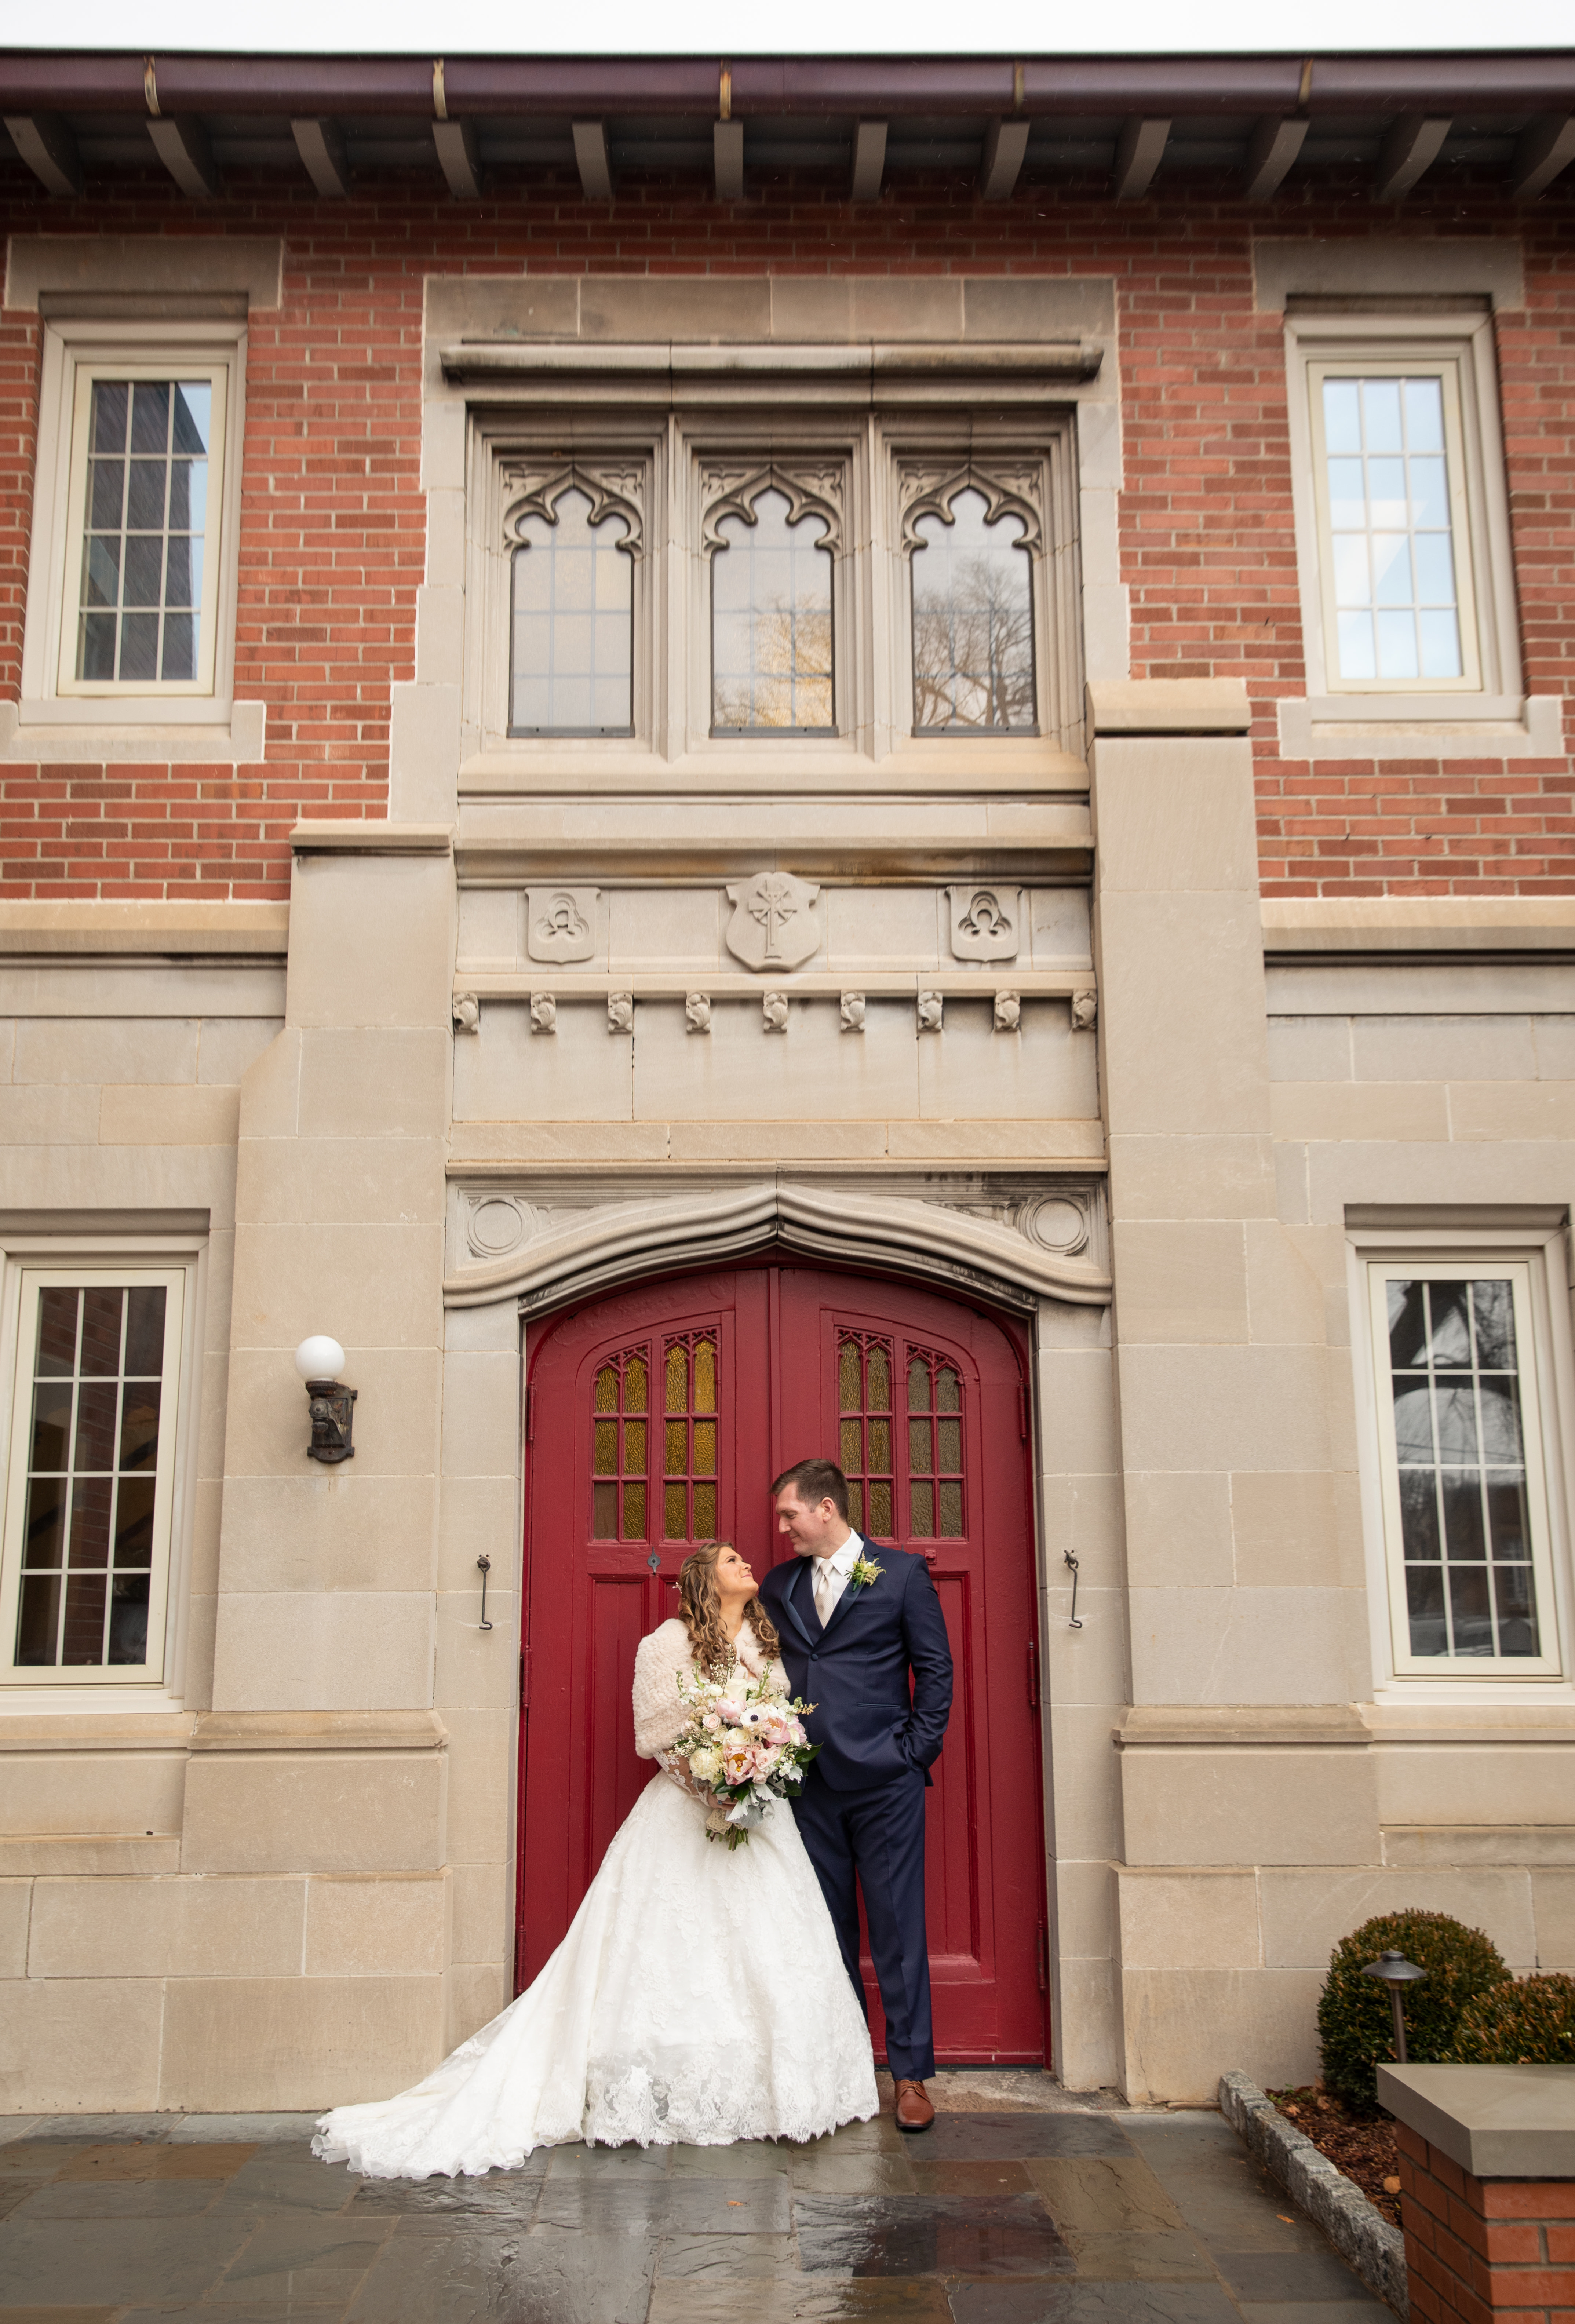 Wedding at trinity episcopal Asheville